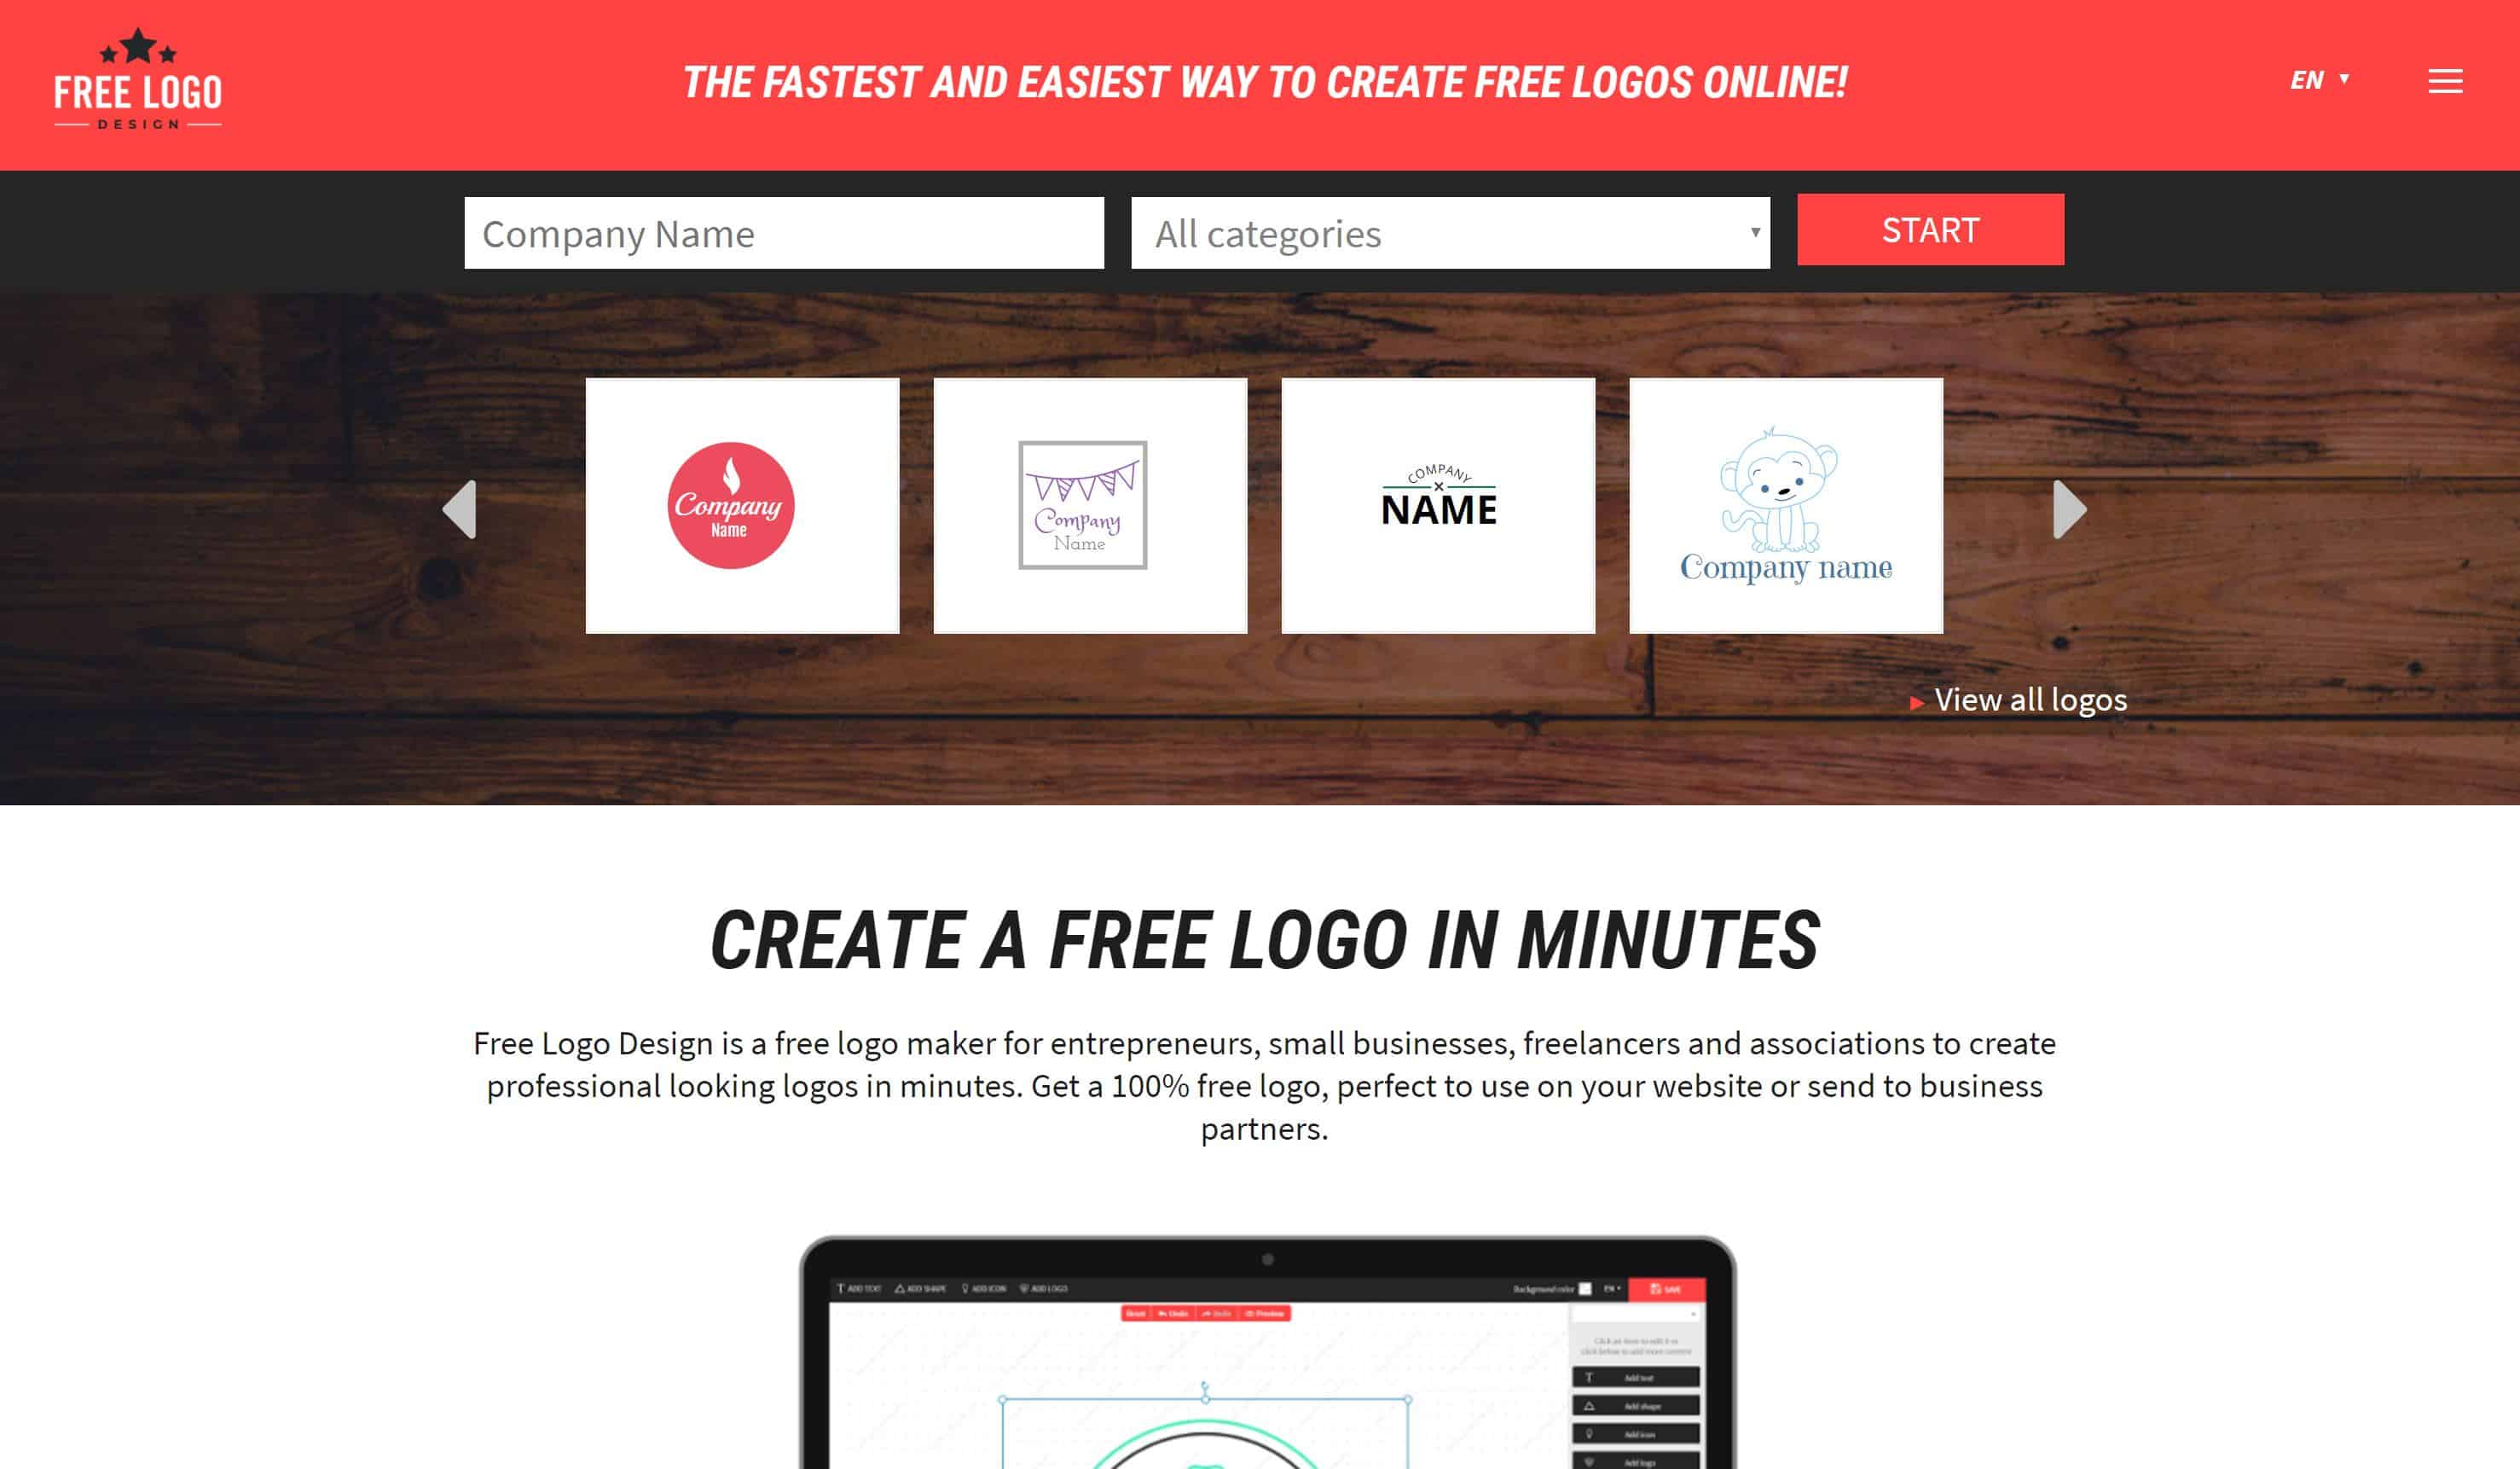 15 Best FREE Online Logo Makers & Generators - websitesetup org